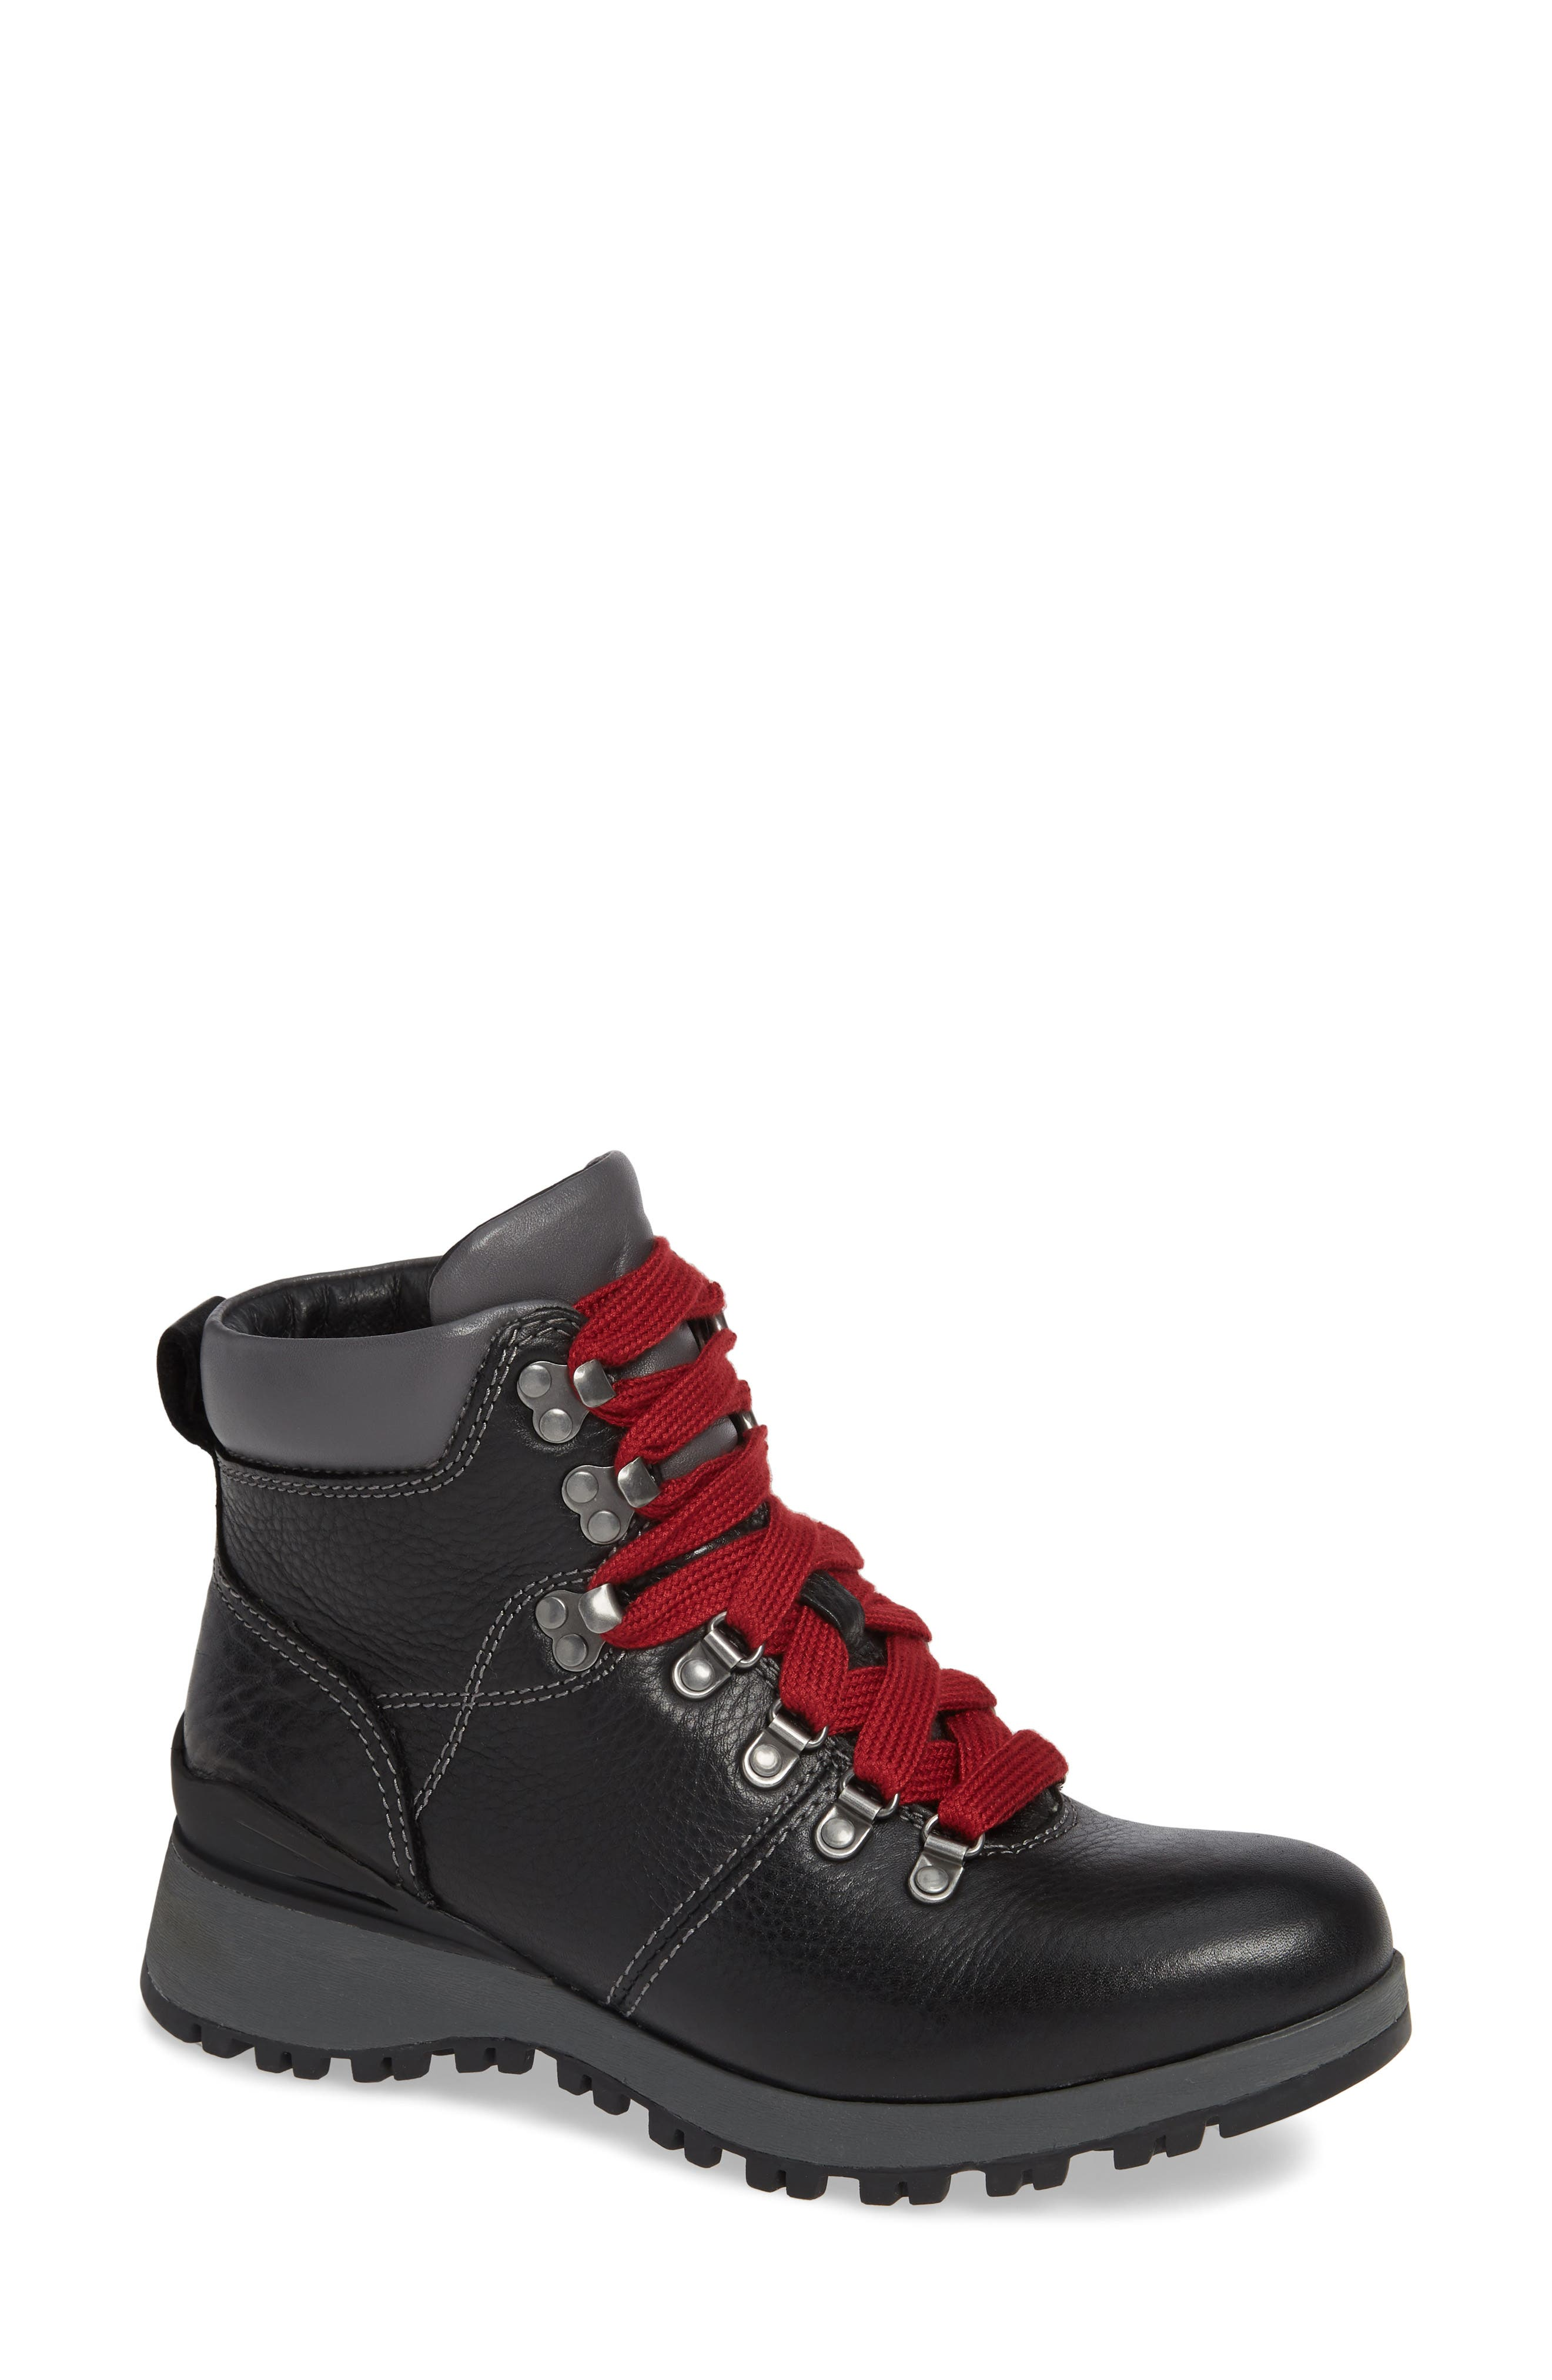 Dalton Lace-Up Waterproof Boot, Main, color, BLACK LEATHER